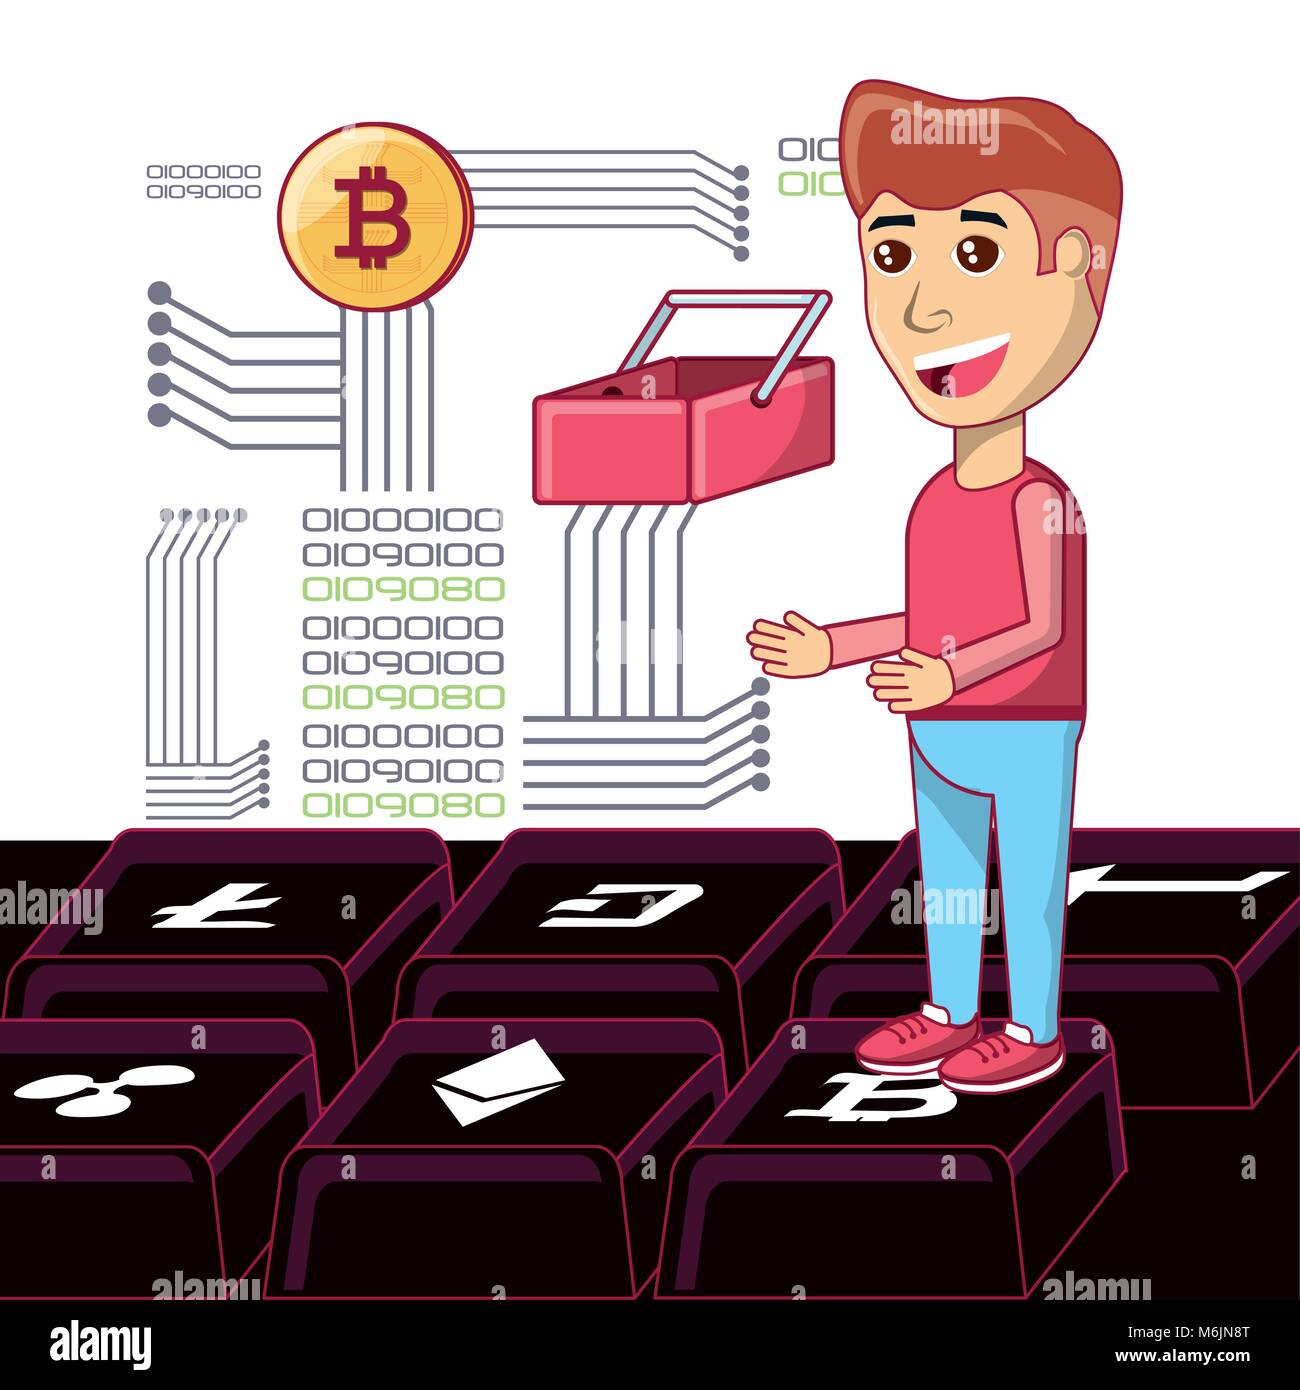 Bitcoin accepted design with cartoon man and shopping basket with binary codes and electronic circuits over white - Stock Image